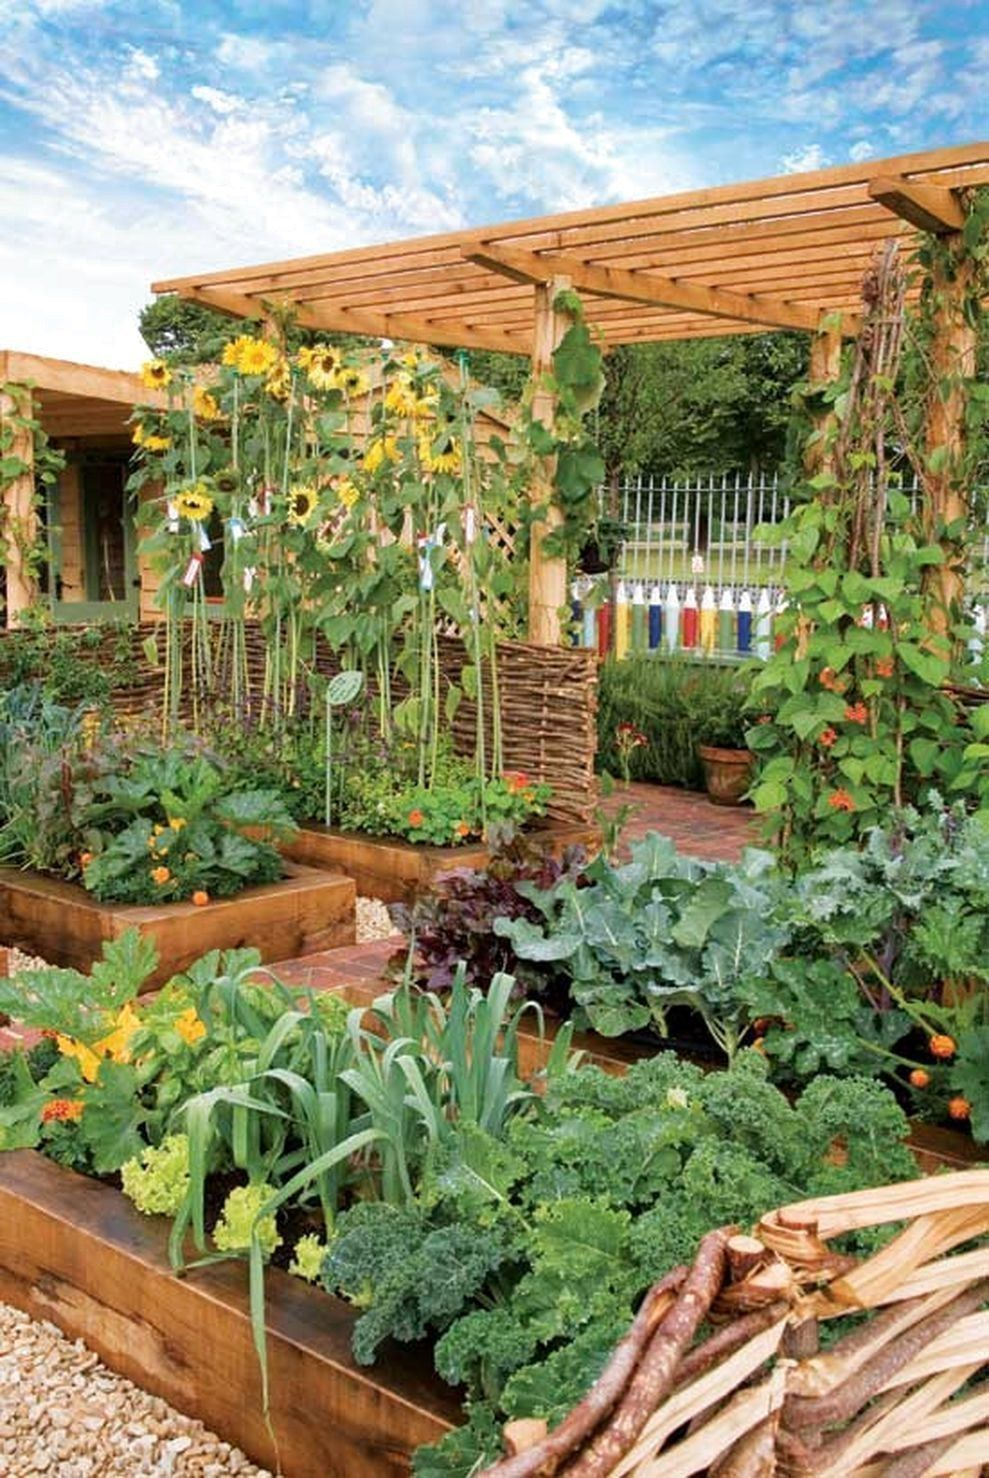 See Fantastic Backyard Vegetable Garden Ideas And Learn The Basics Of Getting A Garden Star Vegetable Garden Beds Home Vegetable Garden Vegetable Garden Design Backyard vegetable garden how to